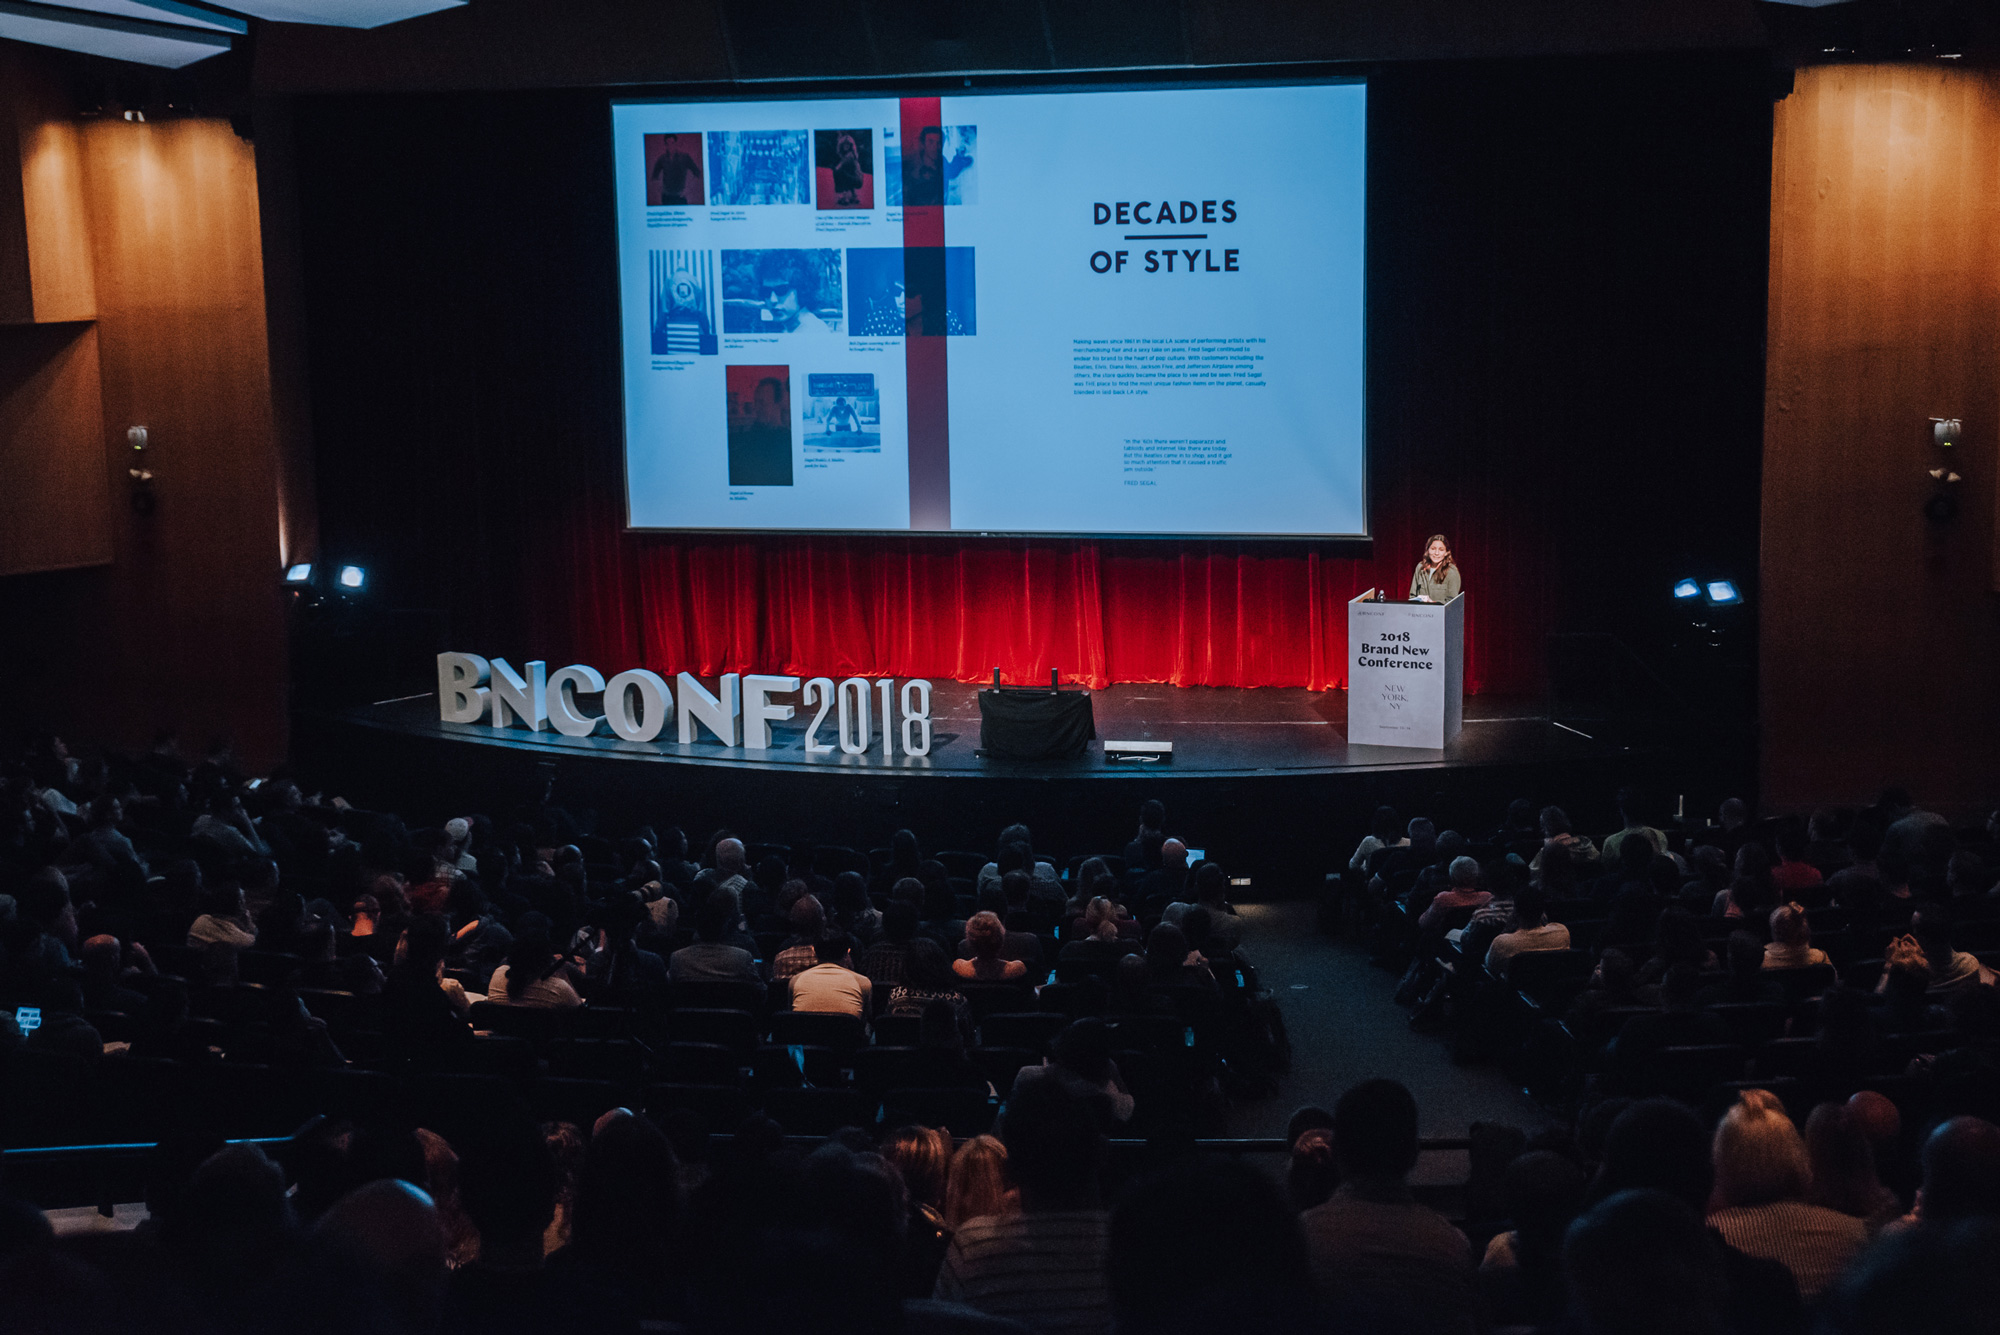 2018 Brand New Conference Identity